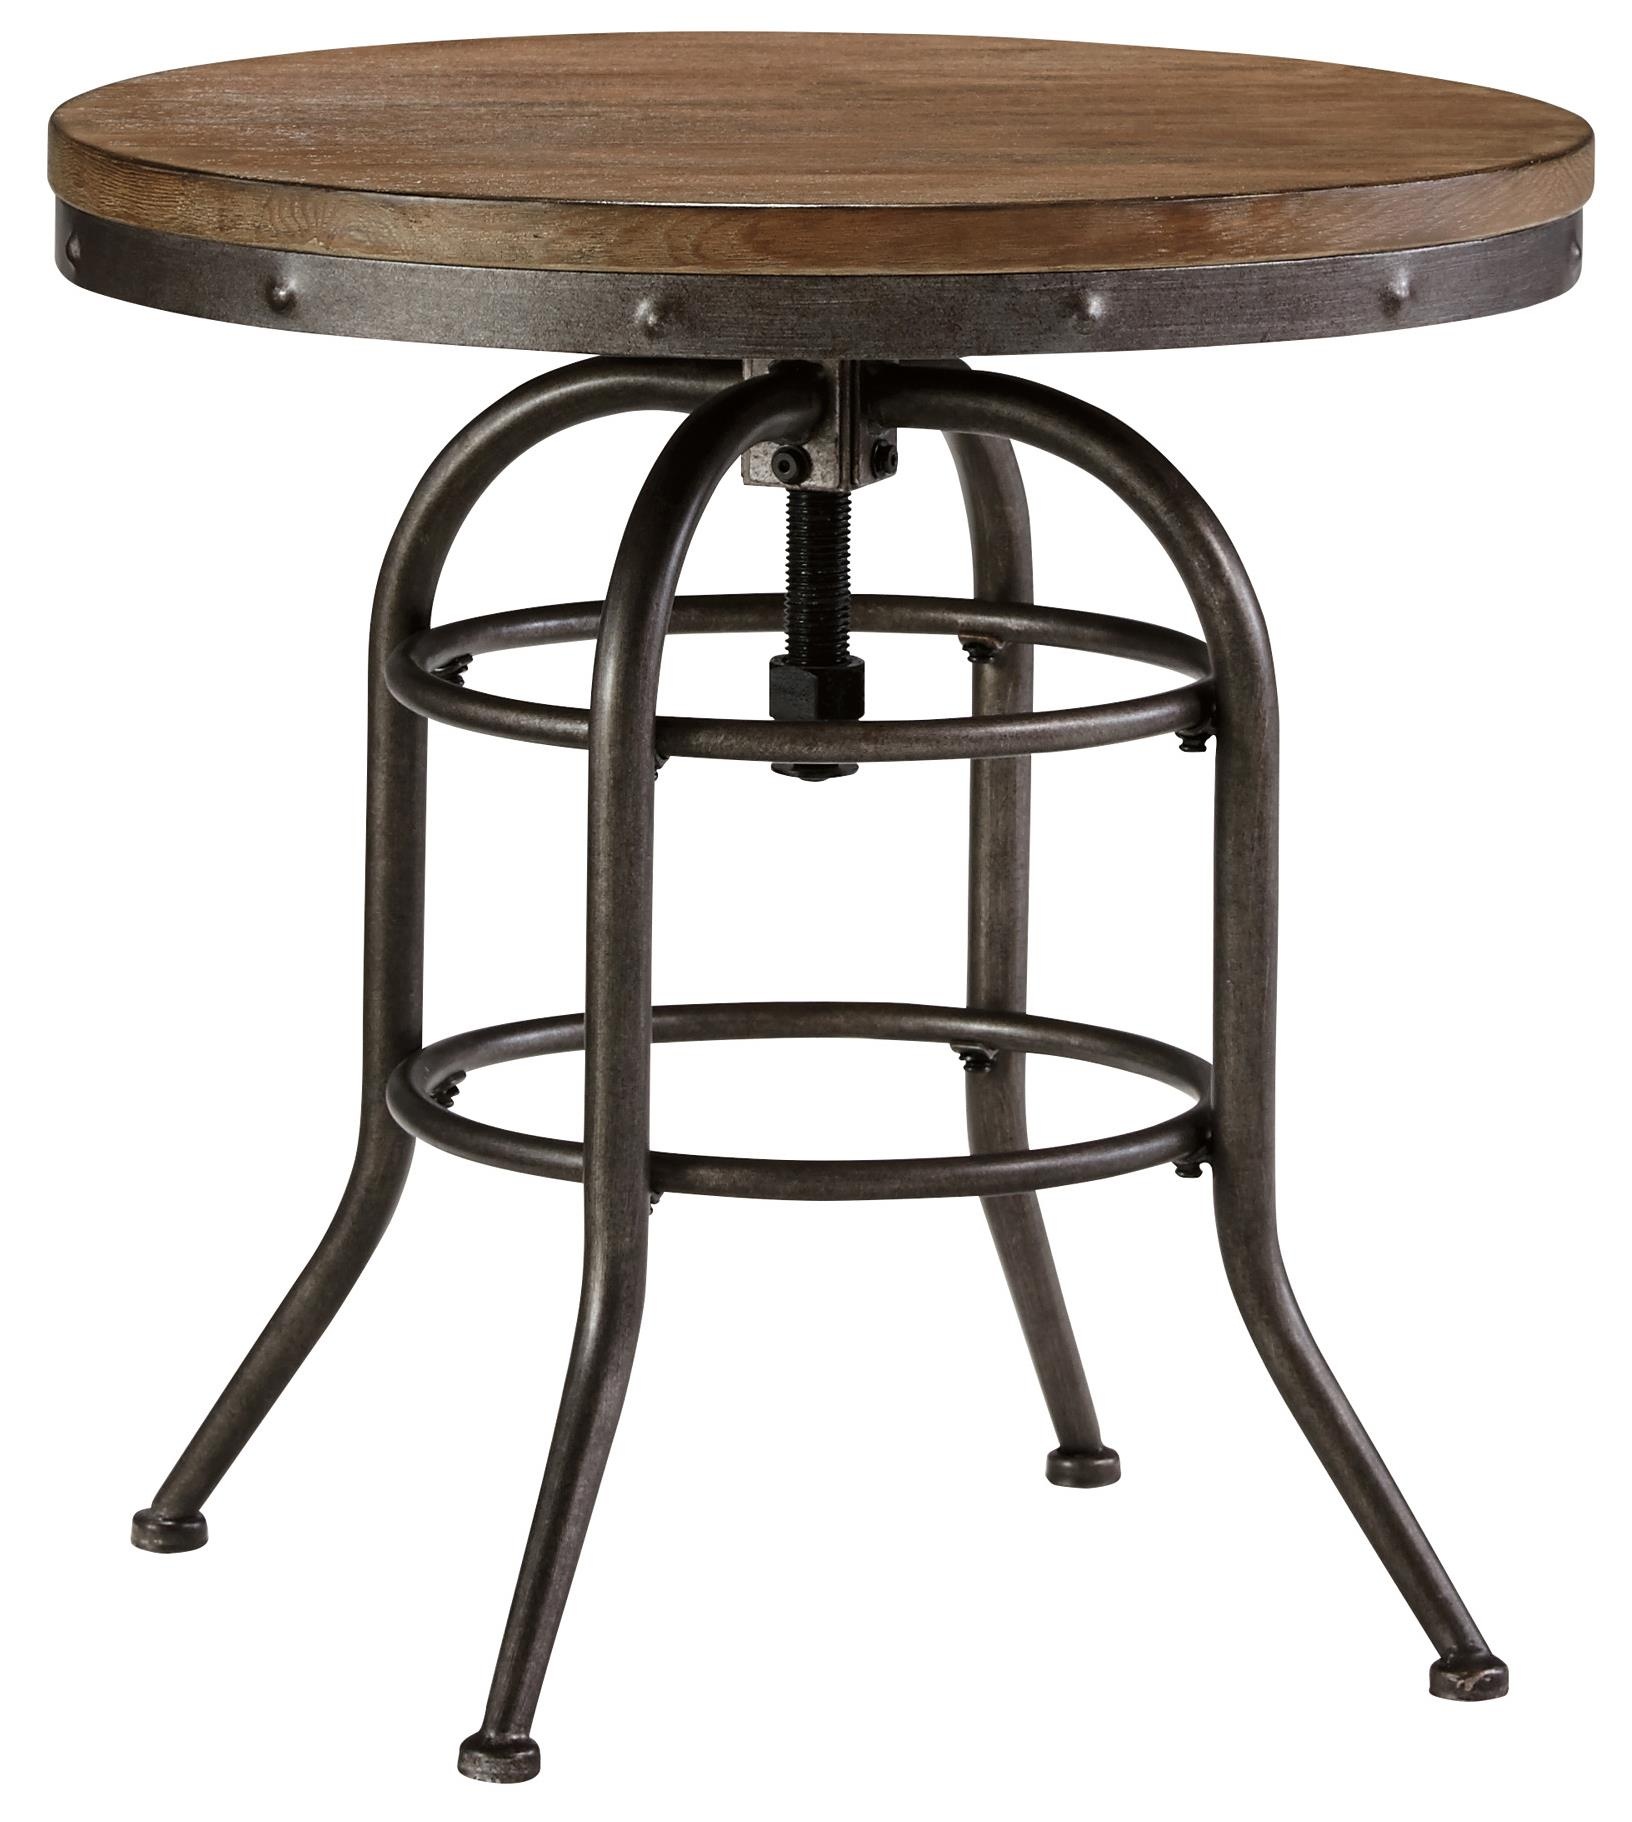 Signature Design by Ashley Vennilux Round End Table - Item Number: T500-726